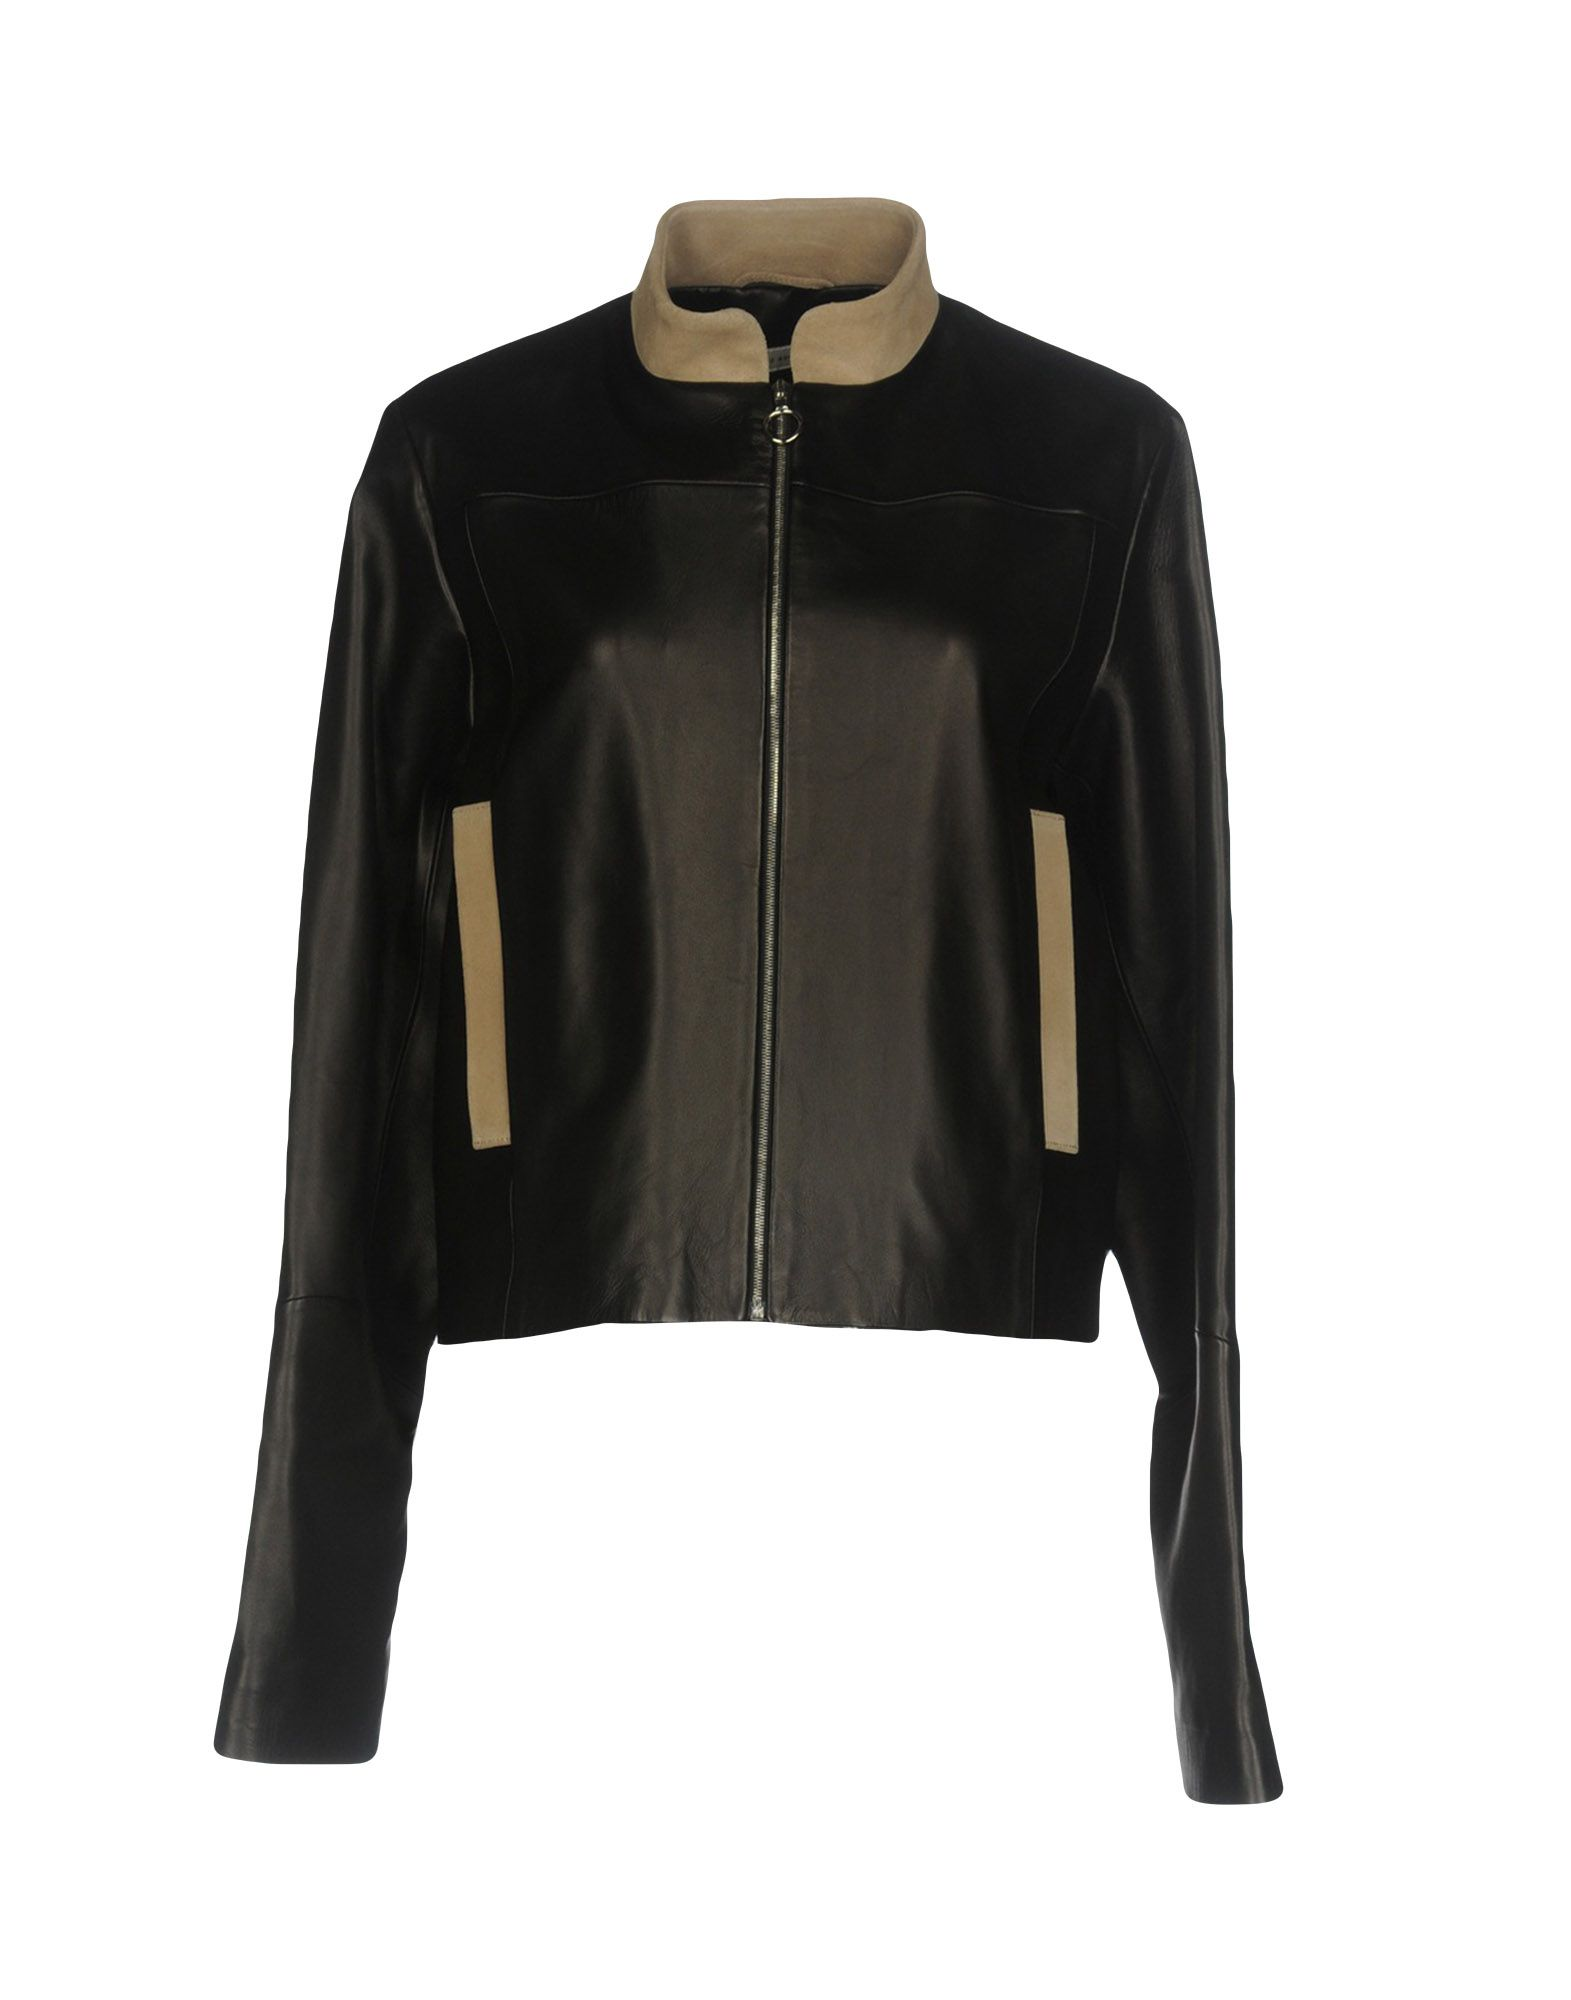 Wales Bonner Leather jacket